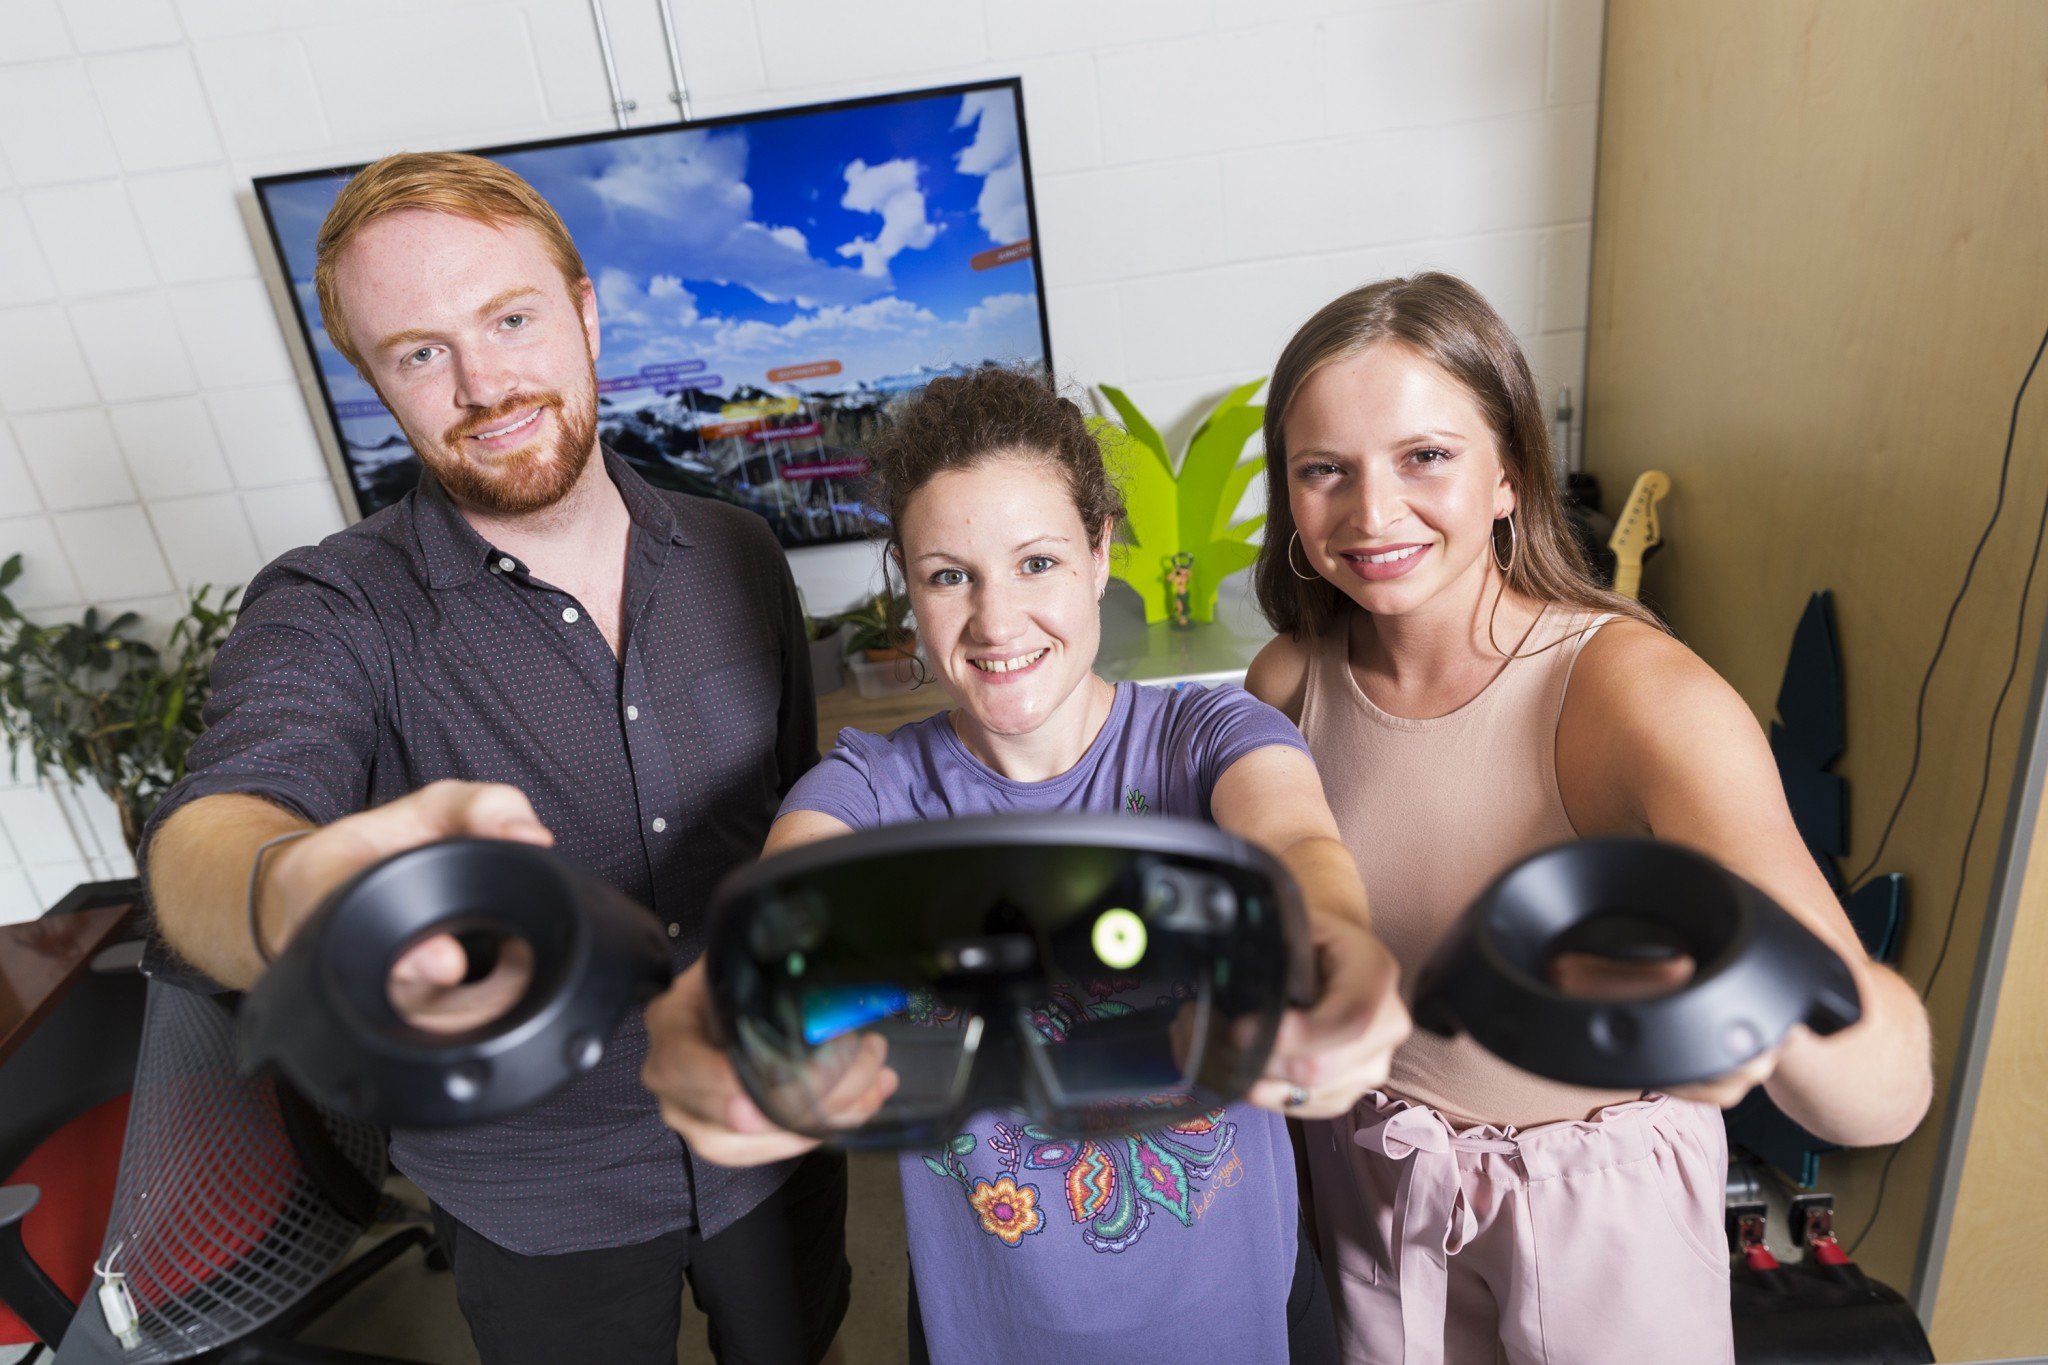 three people holding up VR equipment